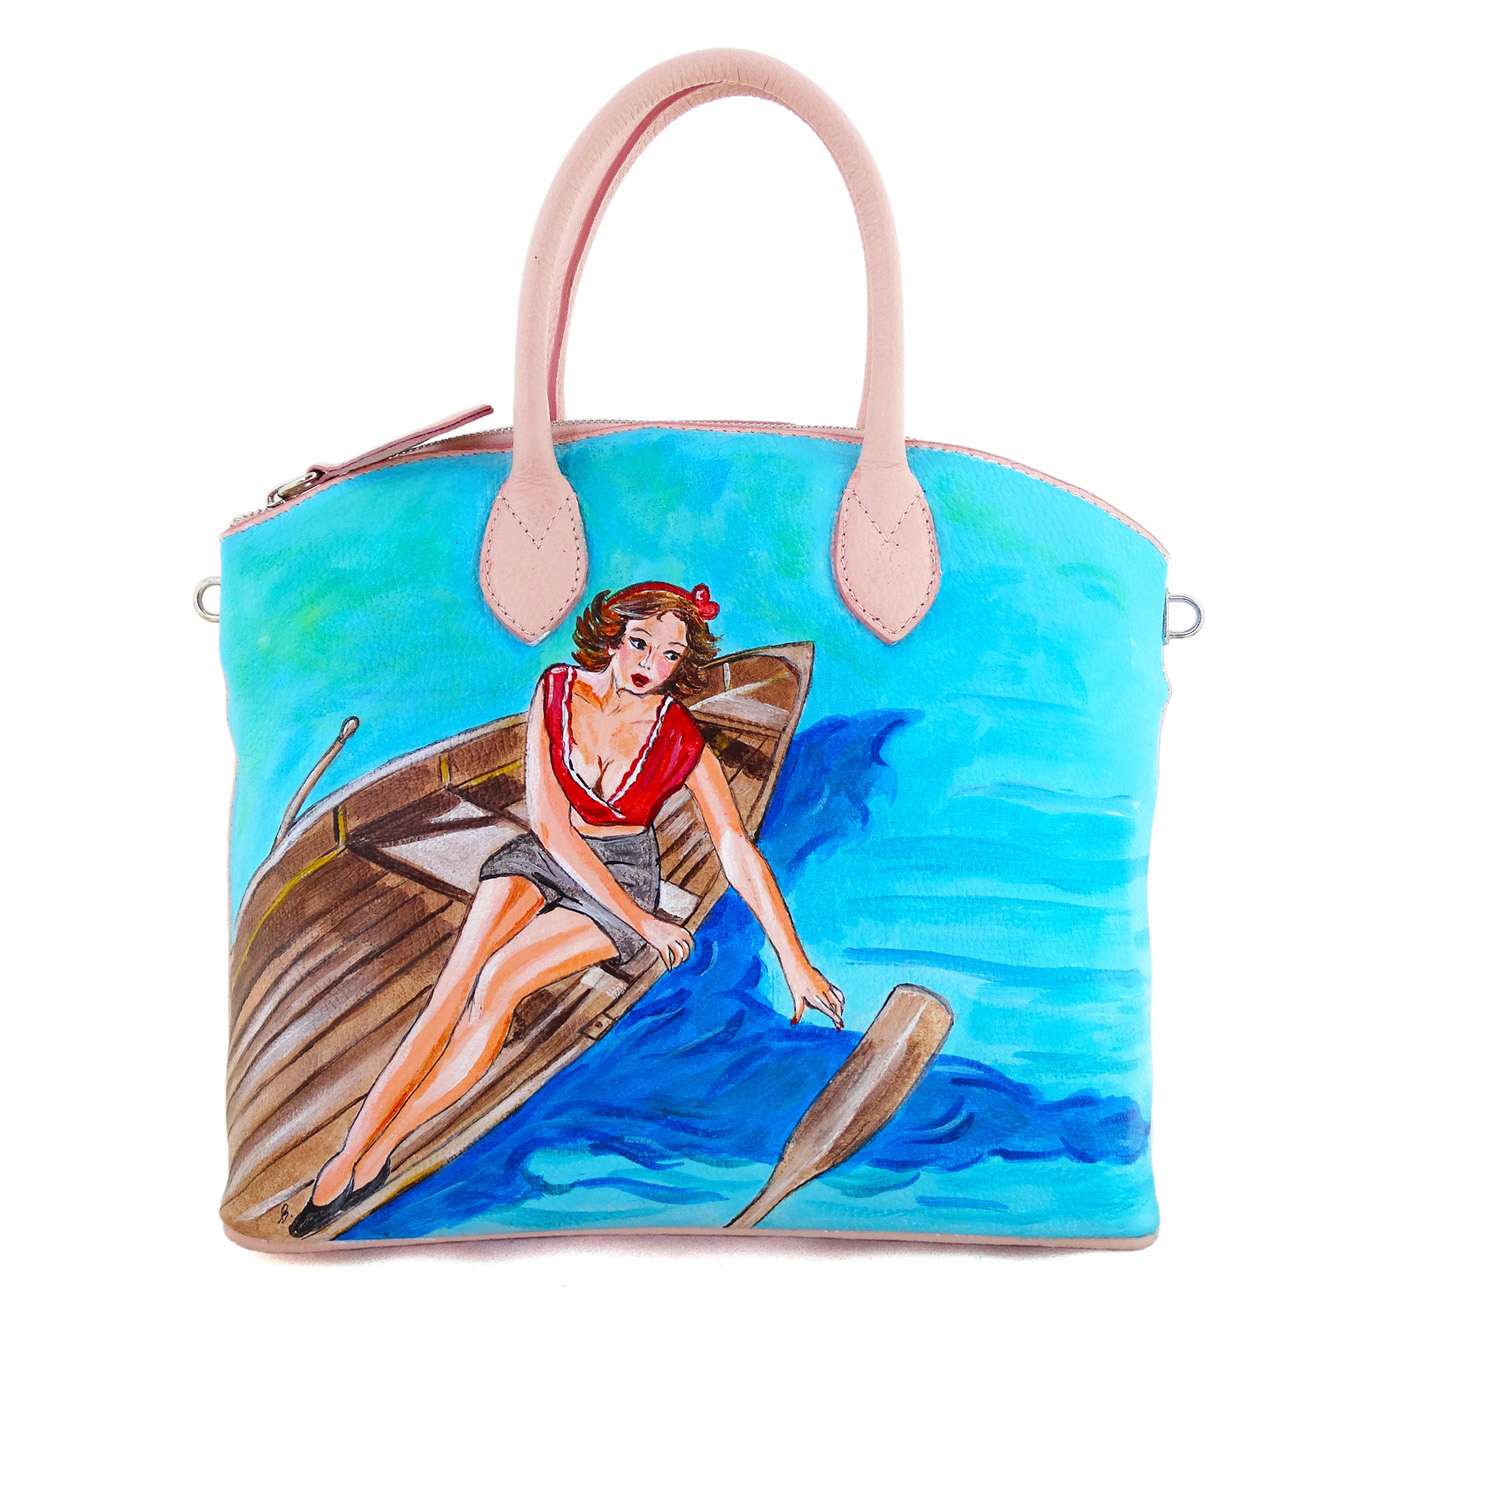 Hand-painted bag - Girl on the boat